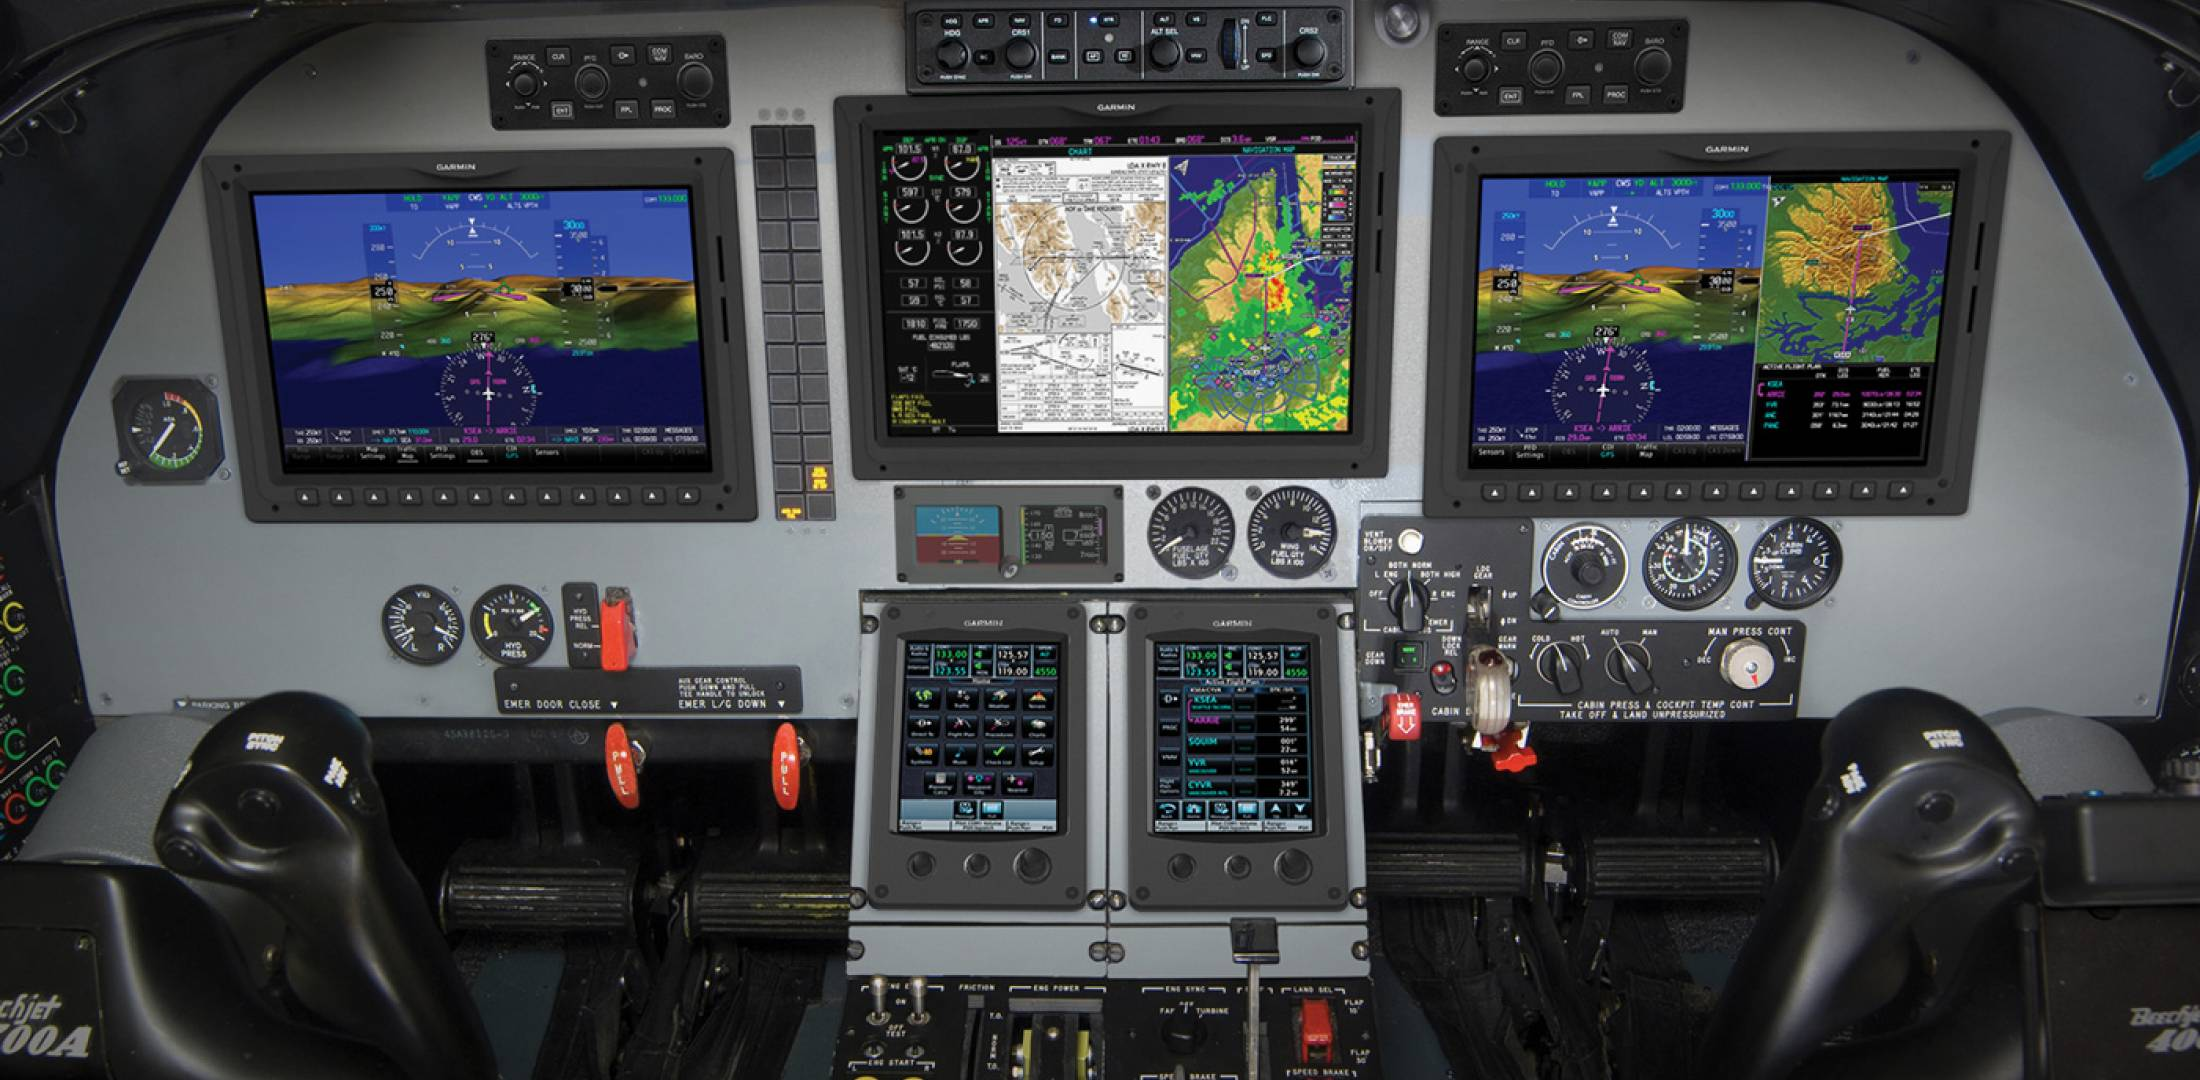 Garmin's G5000 avionics system is slated for retrofit in the Beechjet 400A/Hawker 400XP.